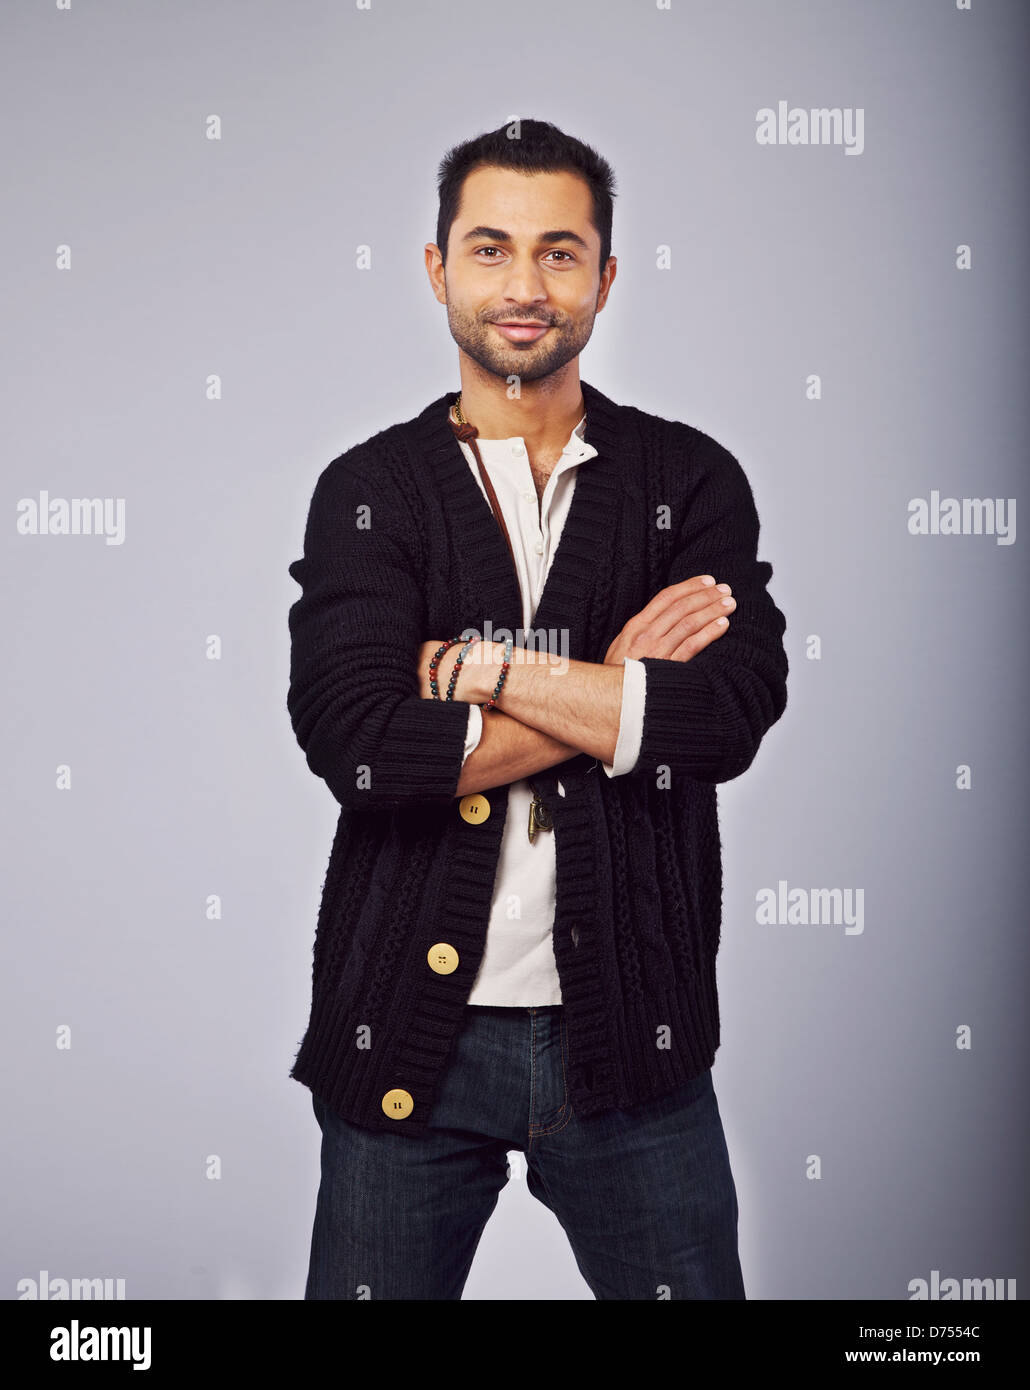 Portrait of a smiling guy standing à la mode dans un studio Photo Stock